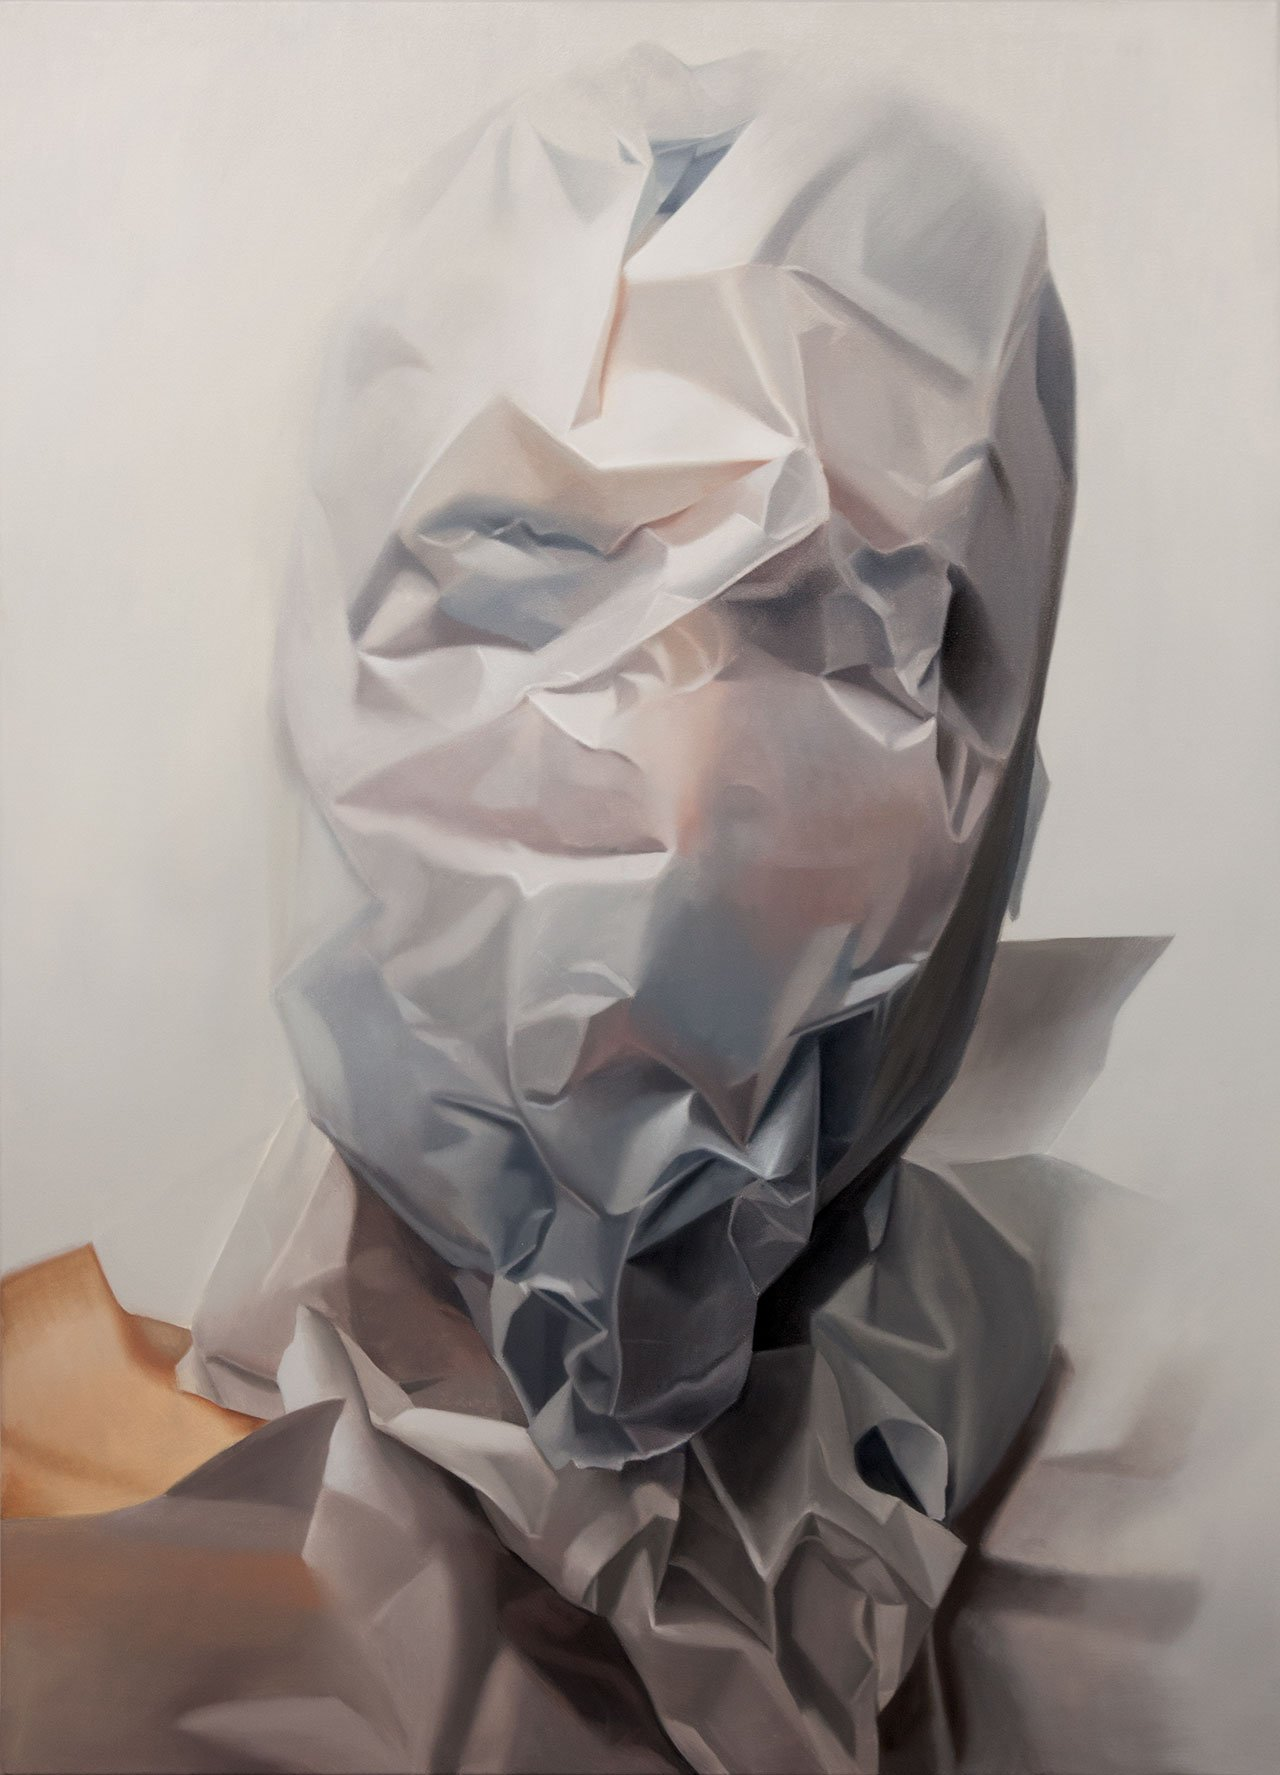 Mike Dargas,Invisible Kid, 2016, Oil on canvas, 140x100cm.